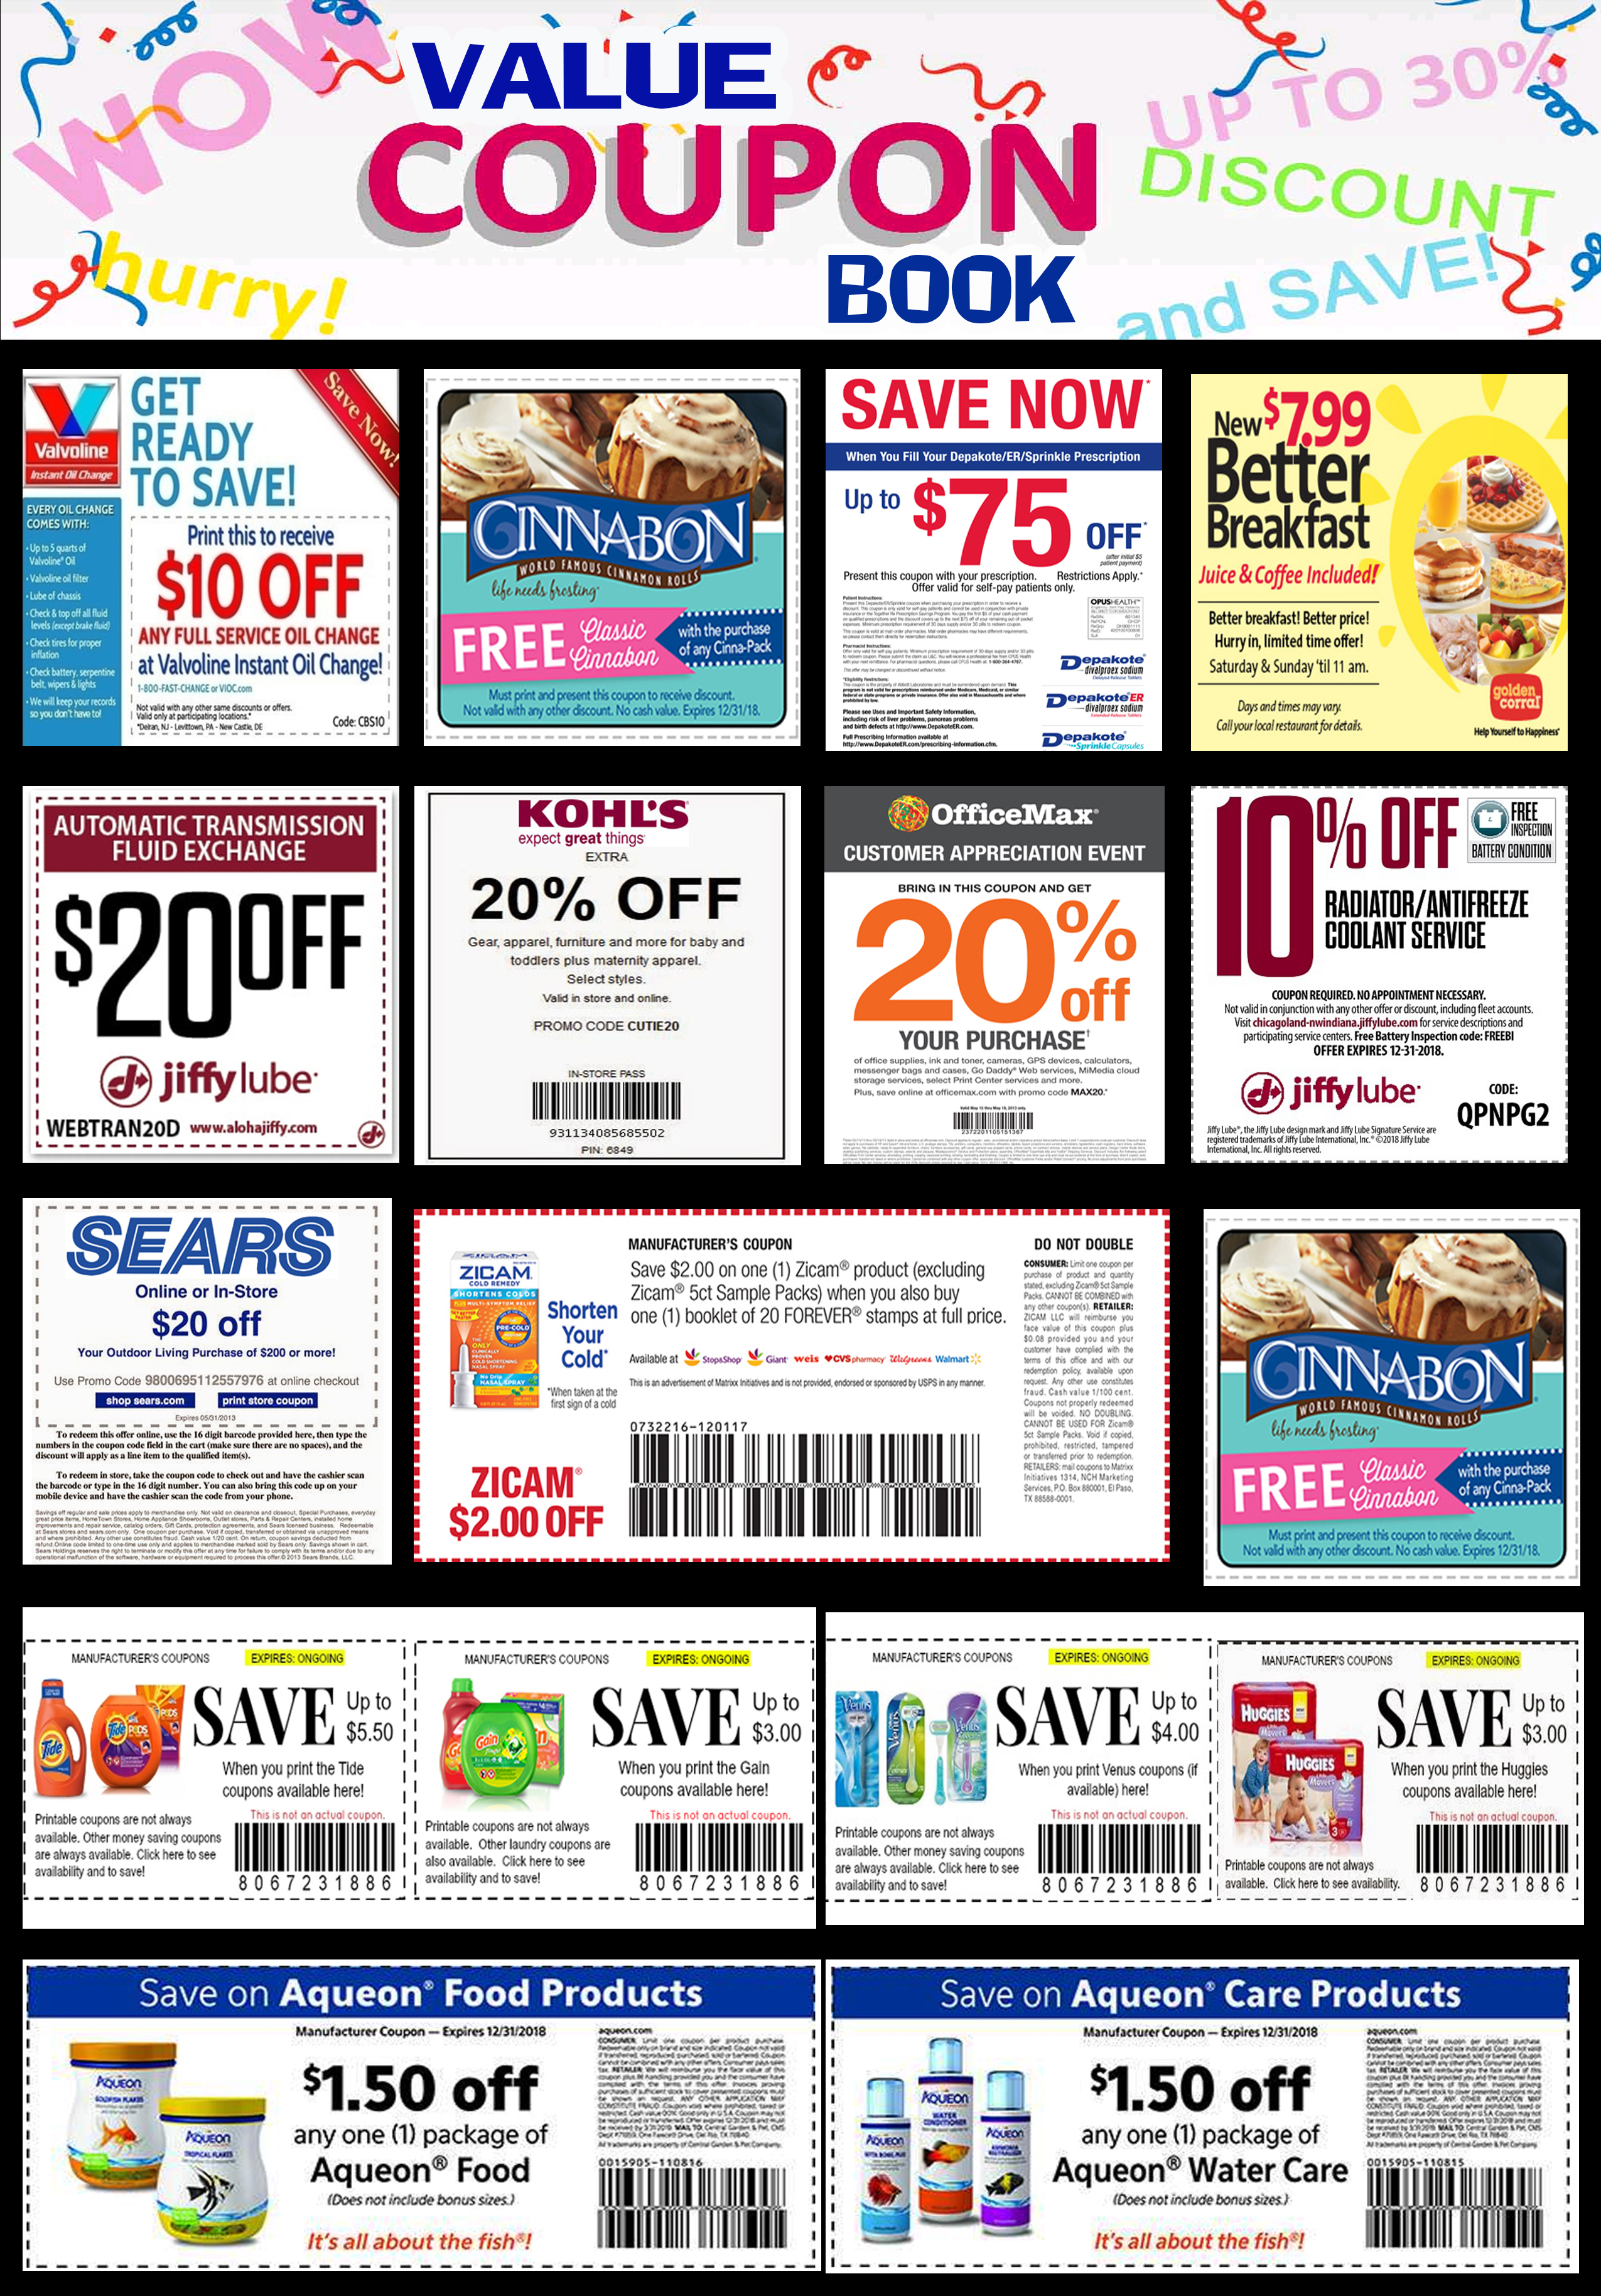 Daily Coupons | Big Savings | Get freee coupons right here!